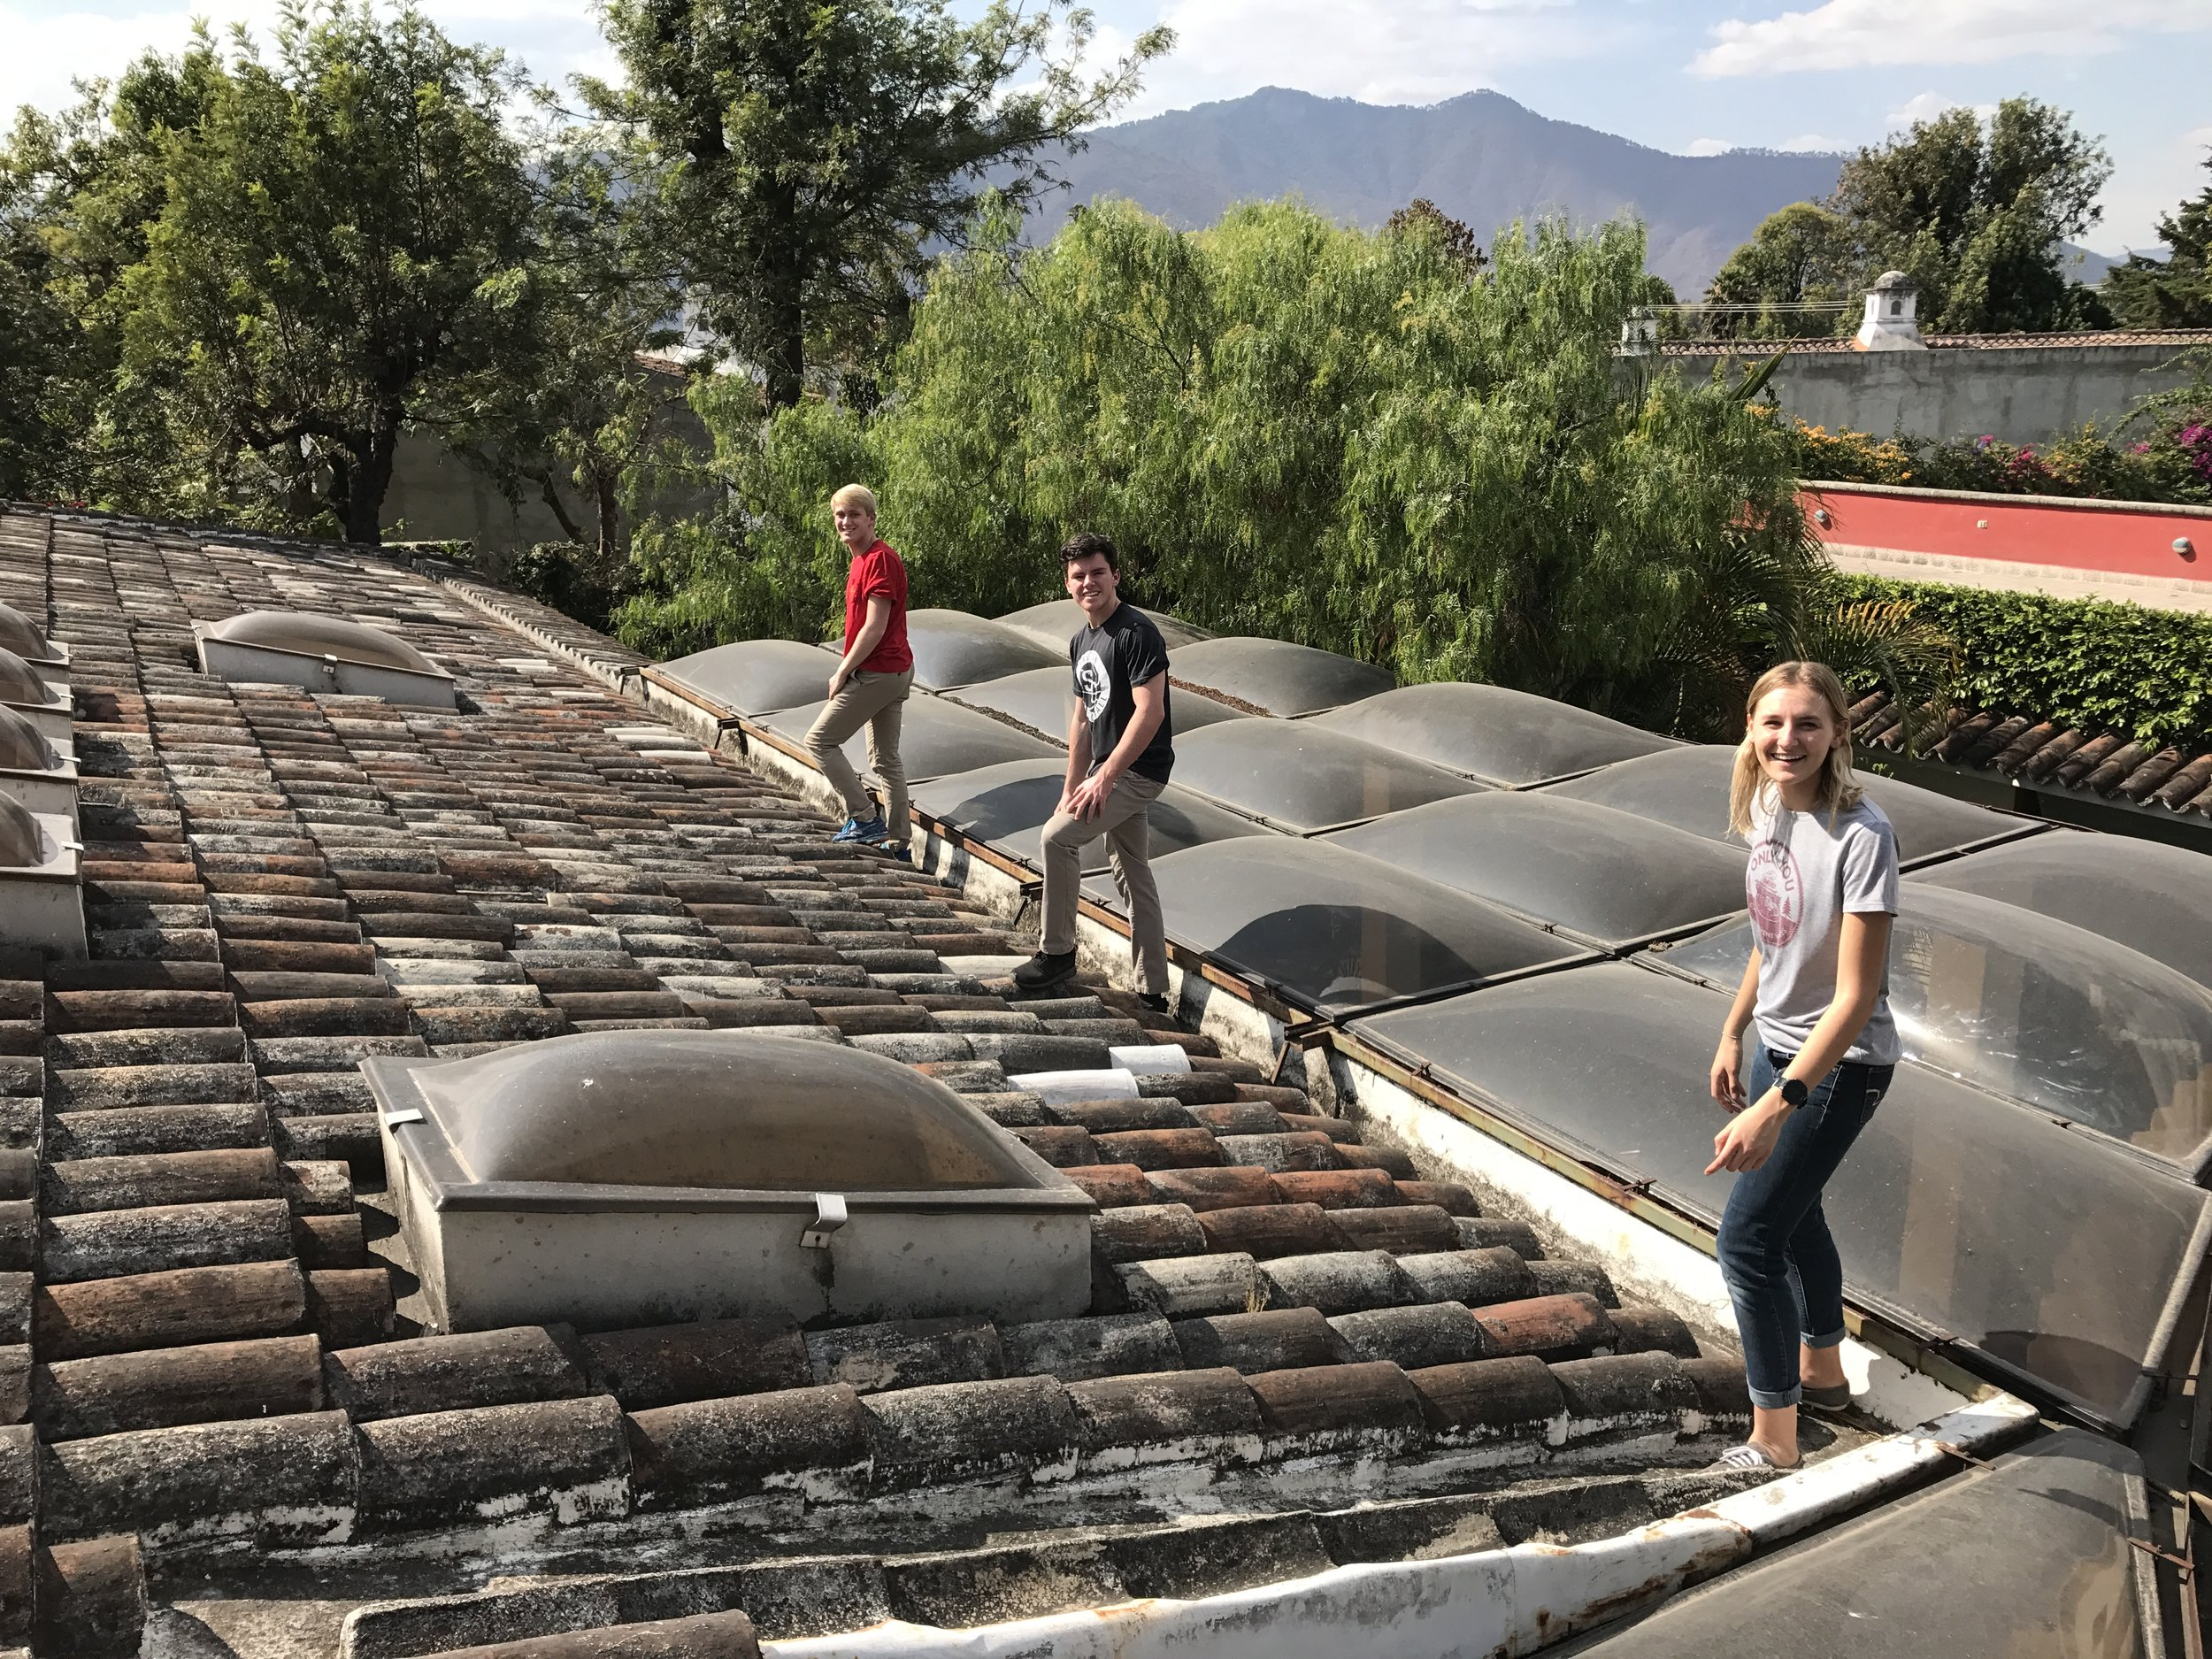 Team members taking measurements of the roofs to design the rain water collection system.